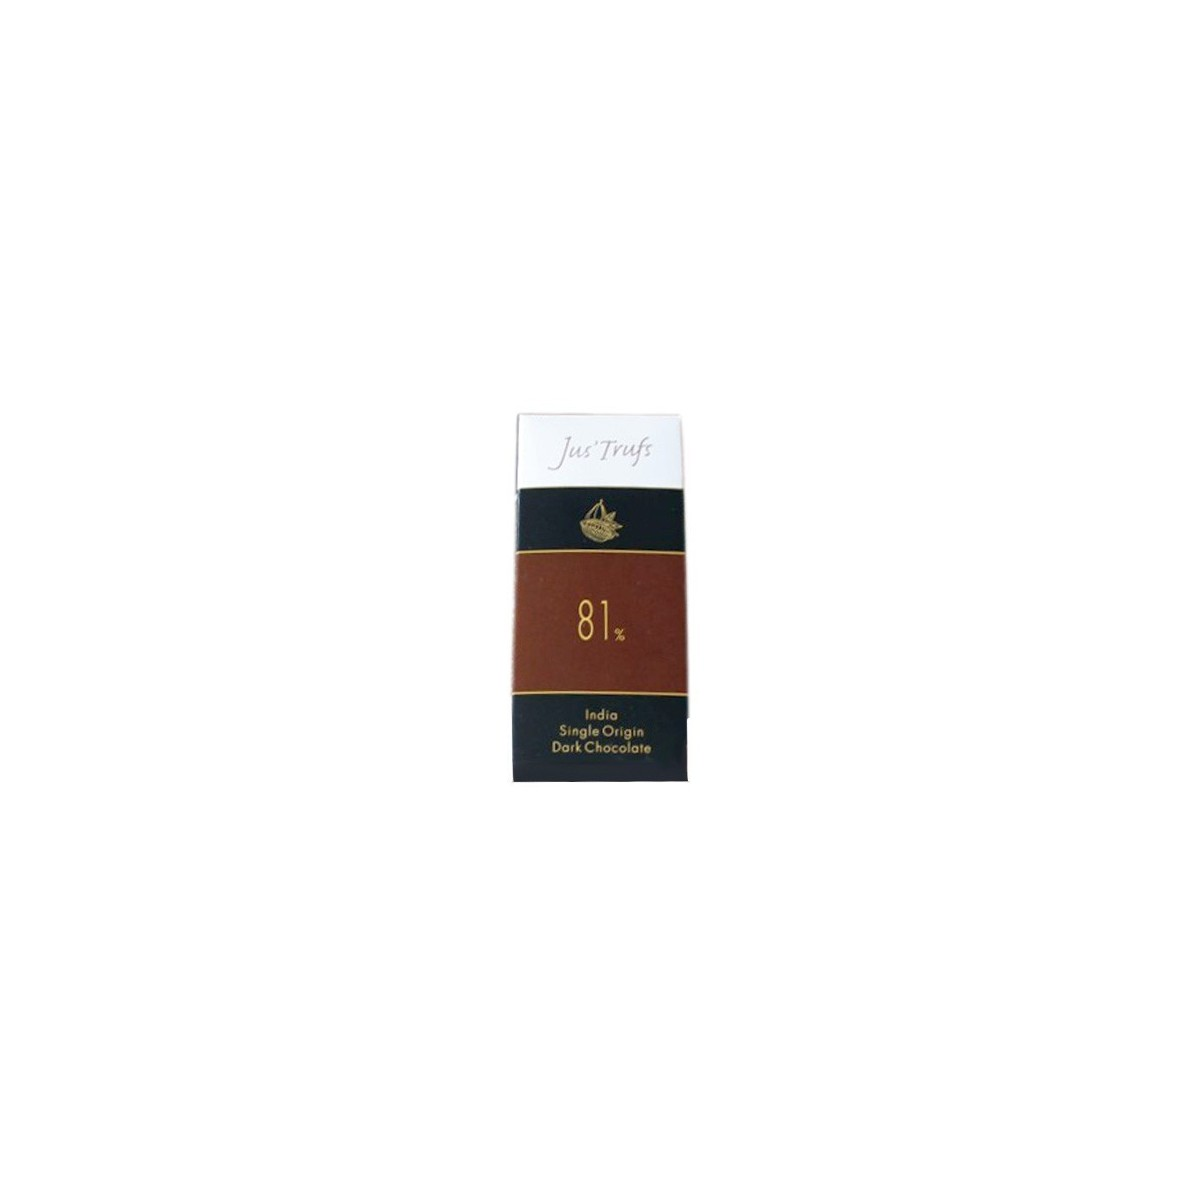 Jus'Trufs Artisanal 81% Dark Chocolate Bar, Set Of 2